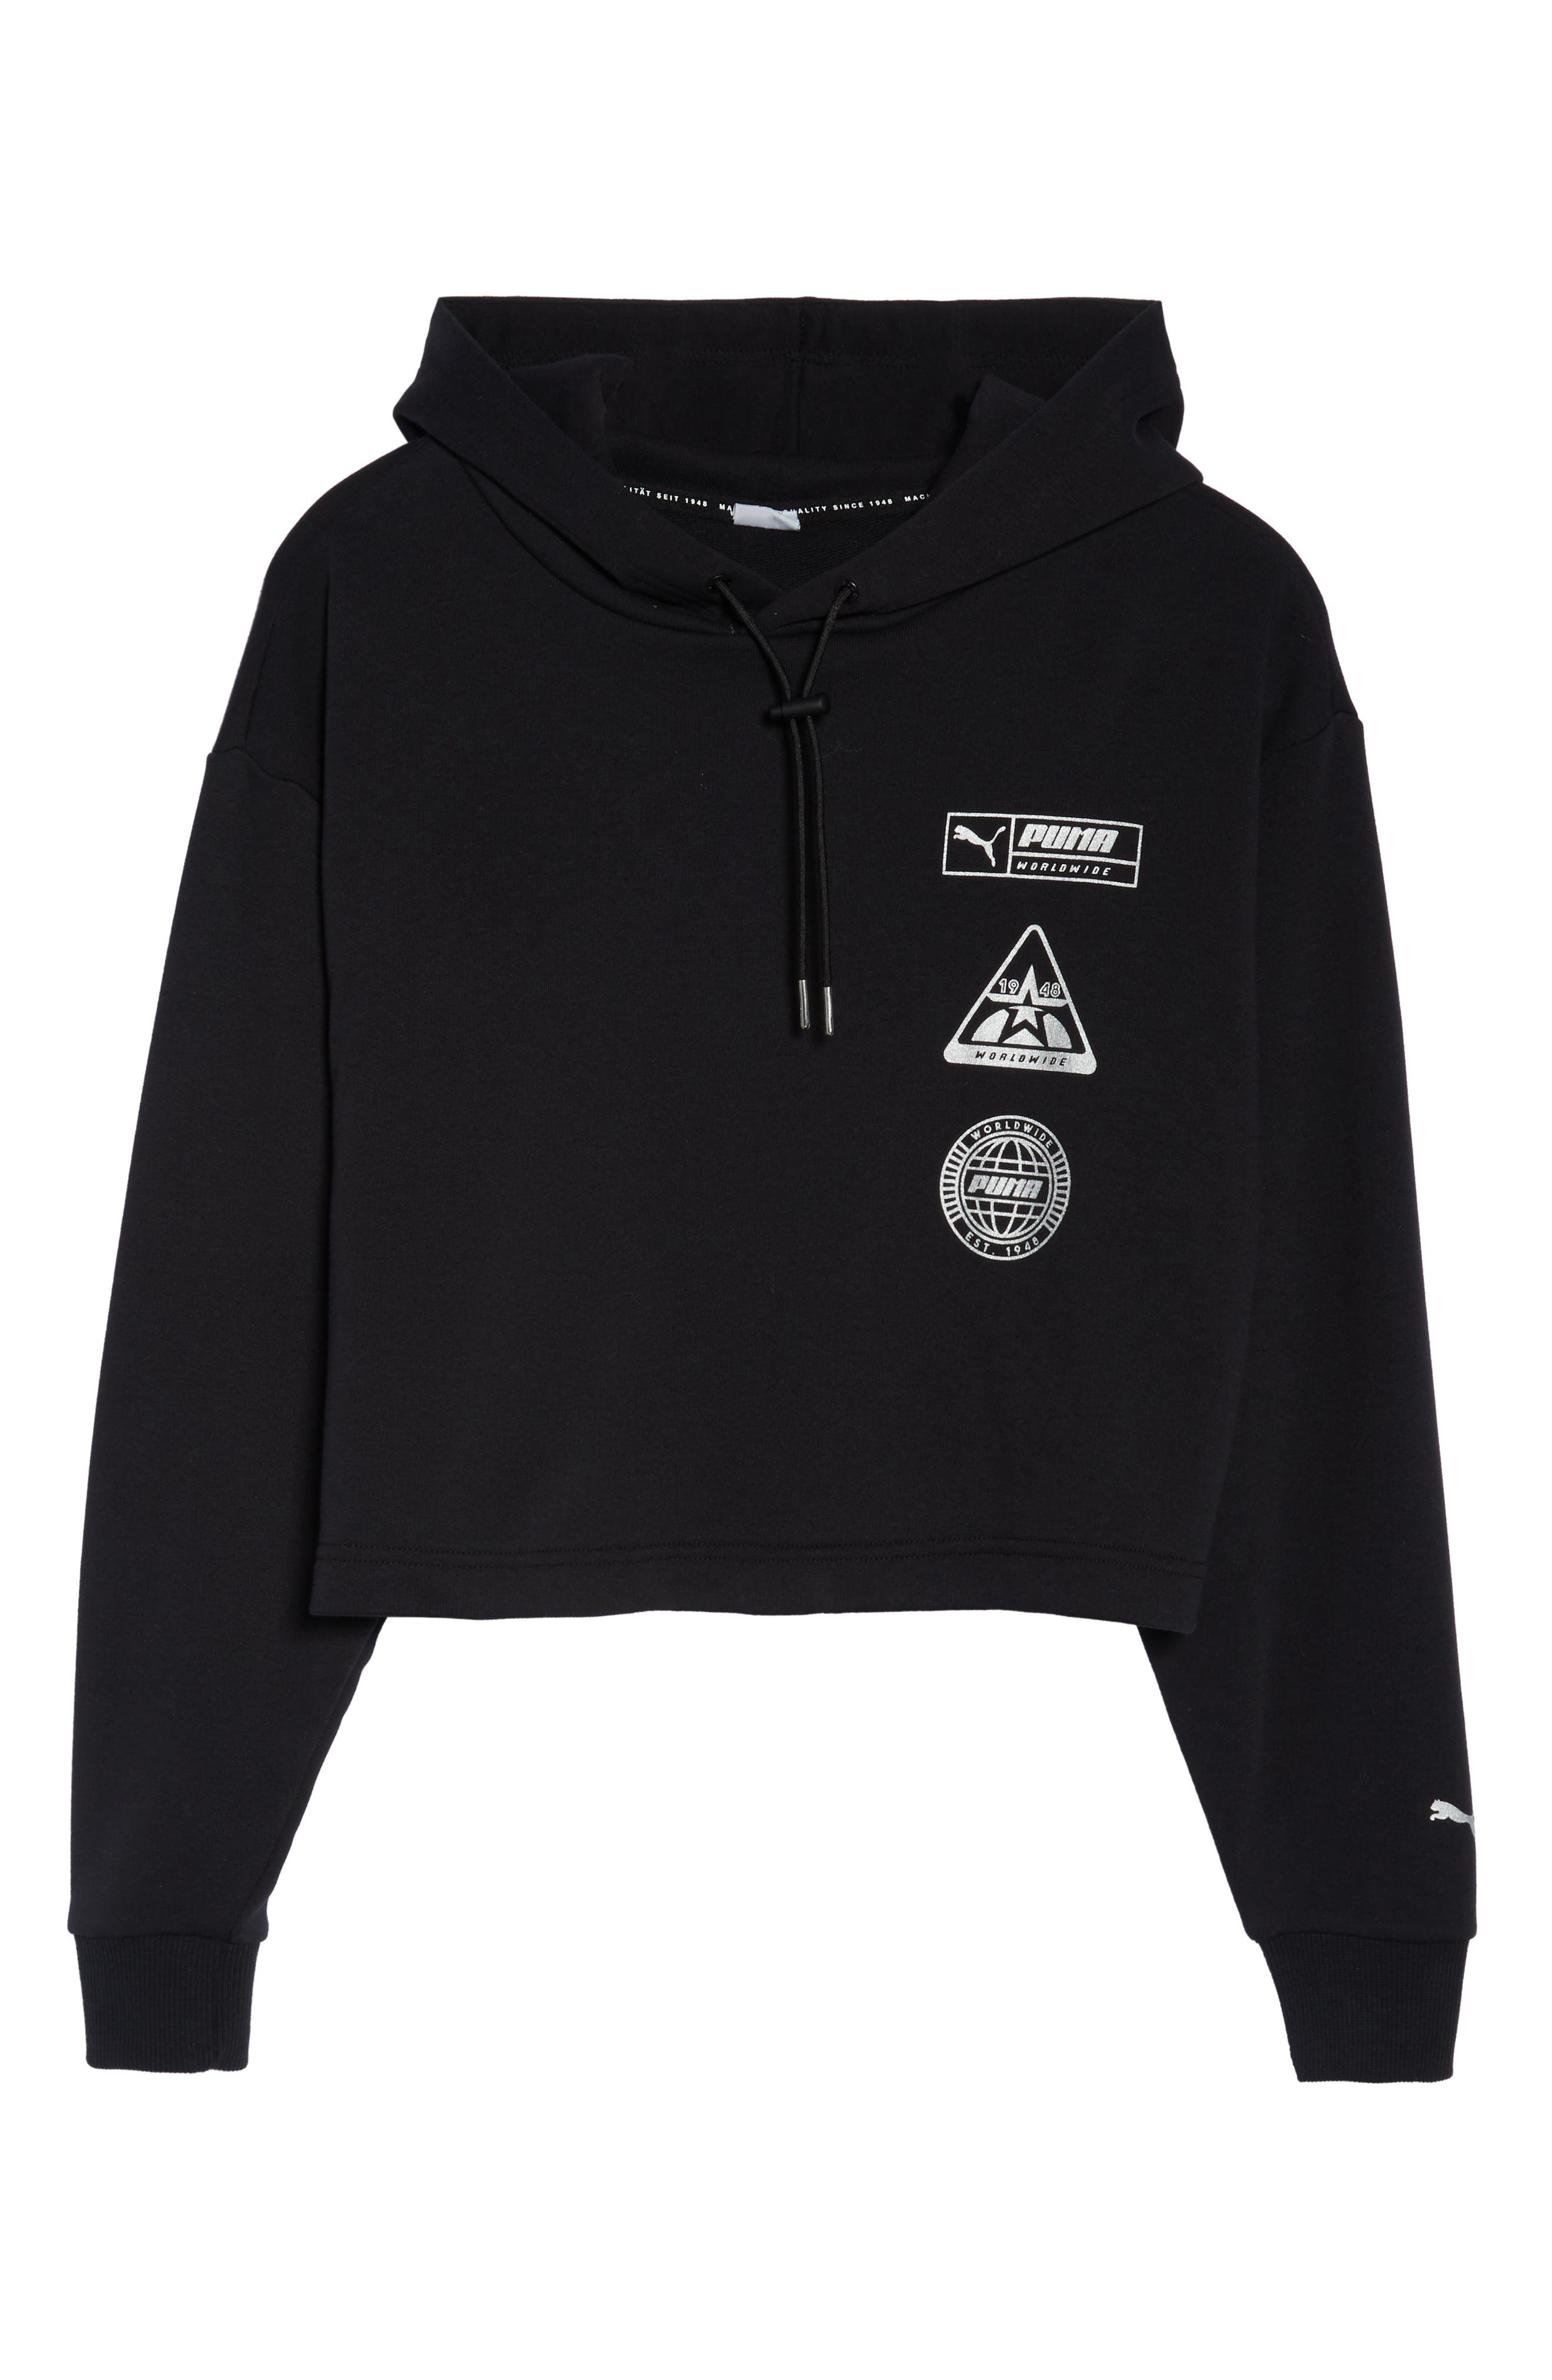 PUMA, TZ Cropped Hoodie, Alternate thumbnail 7, color, BLACK